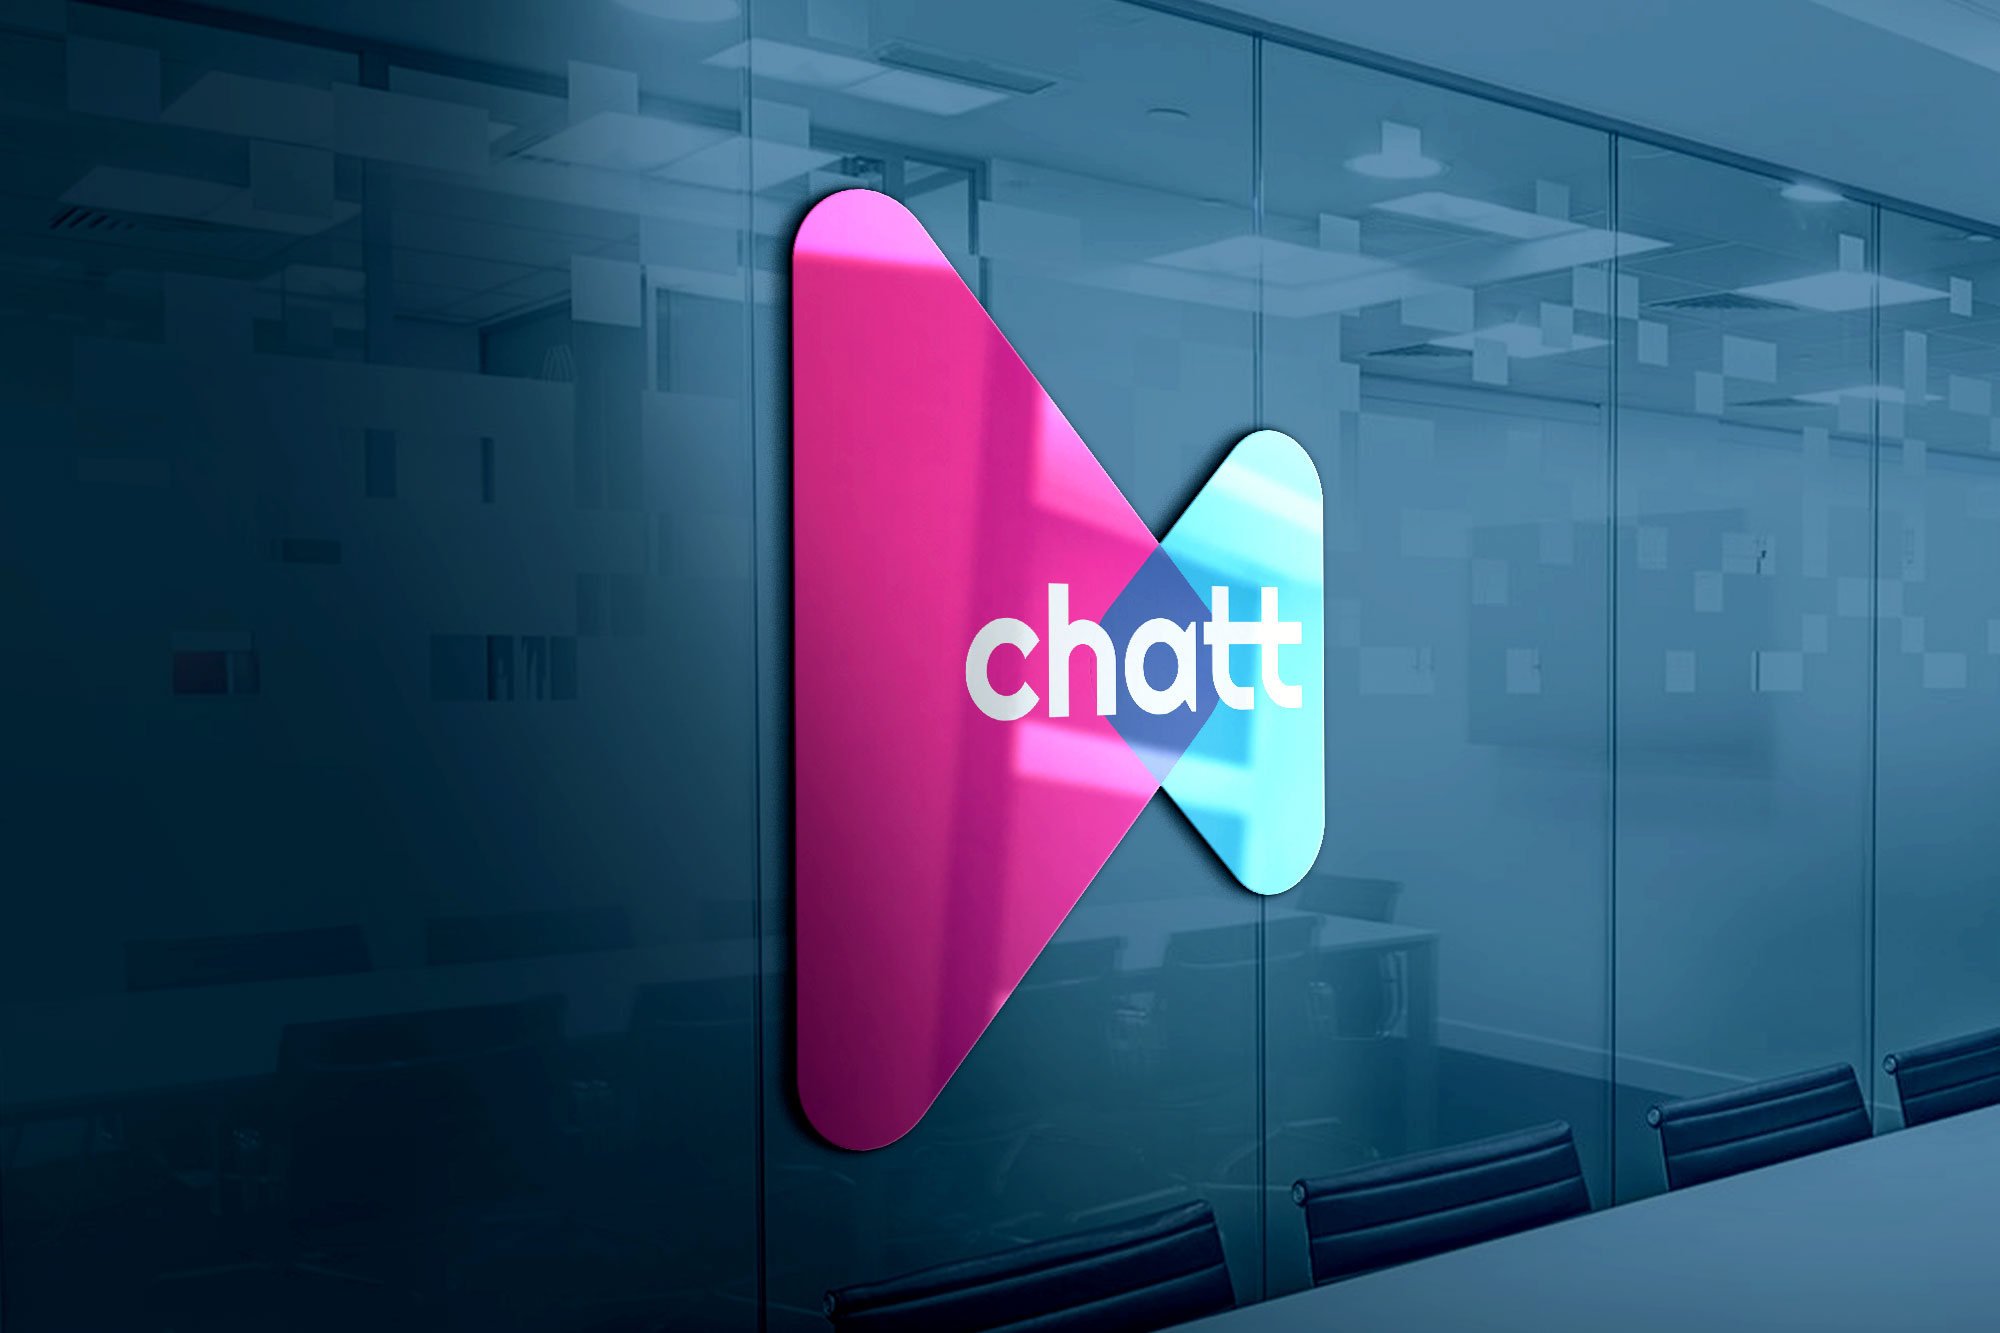 New logo and identity for an automated online chat service for SMEs